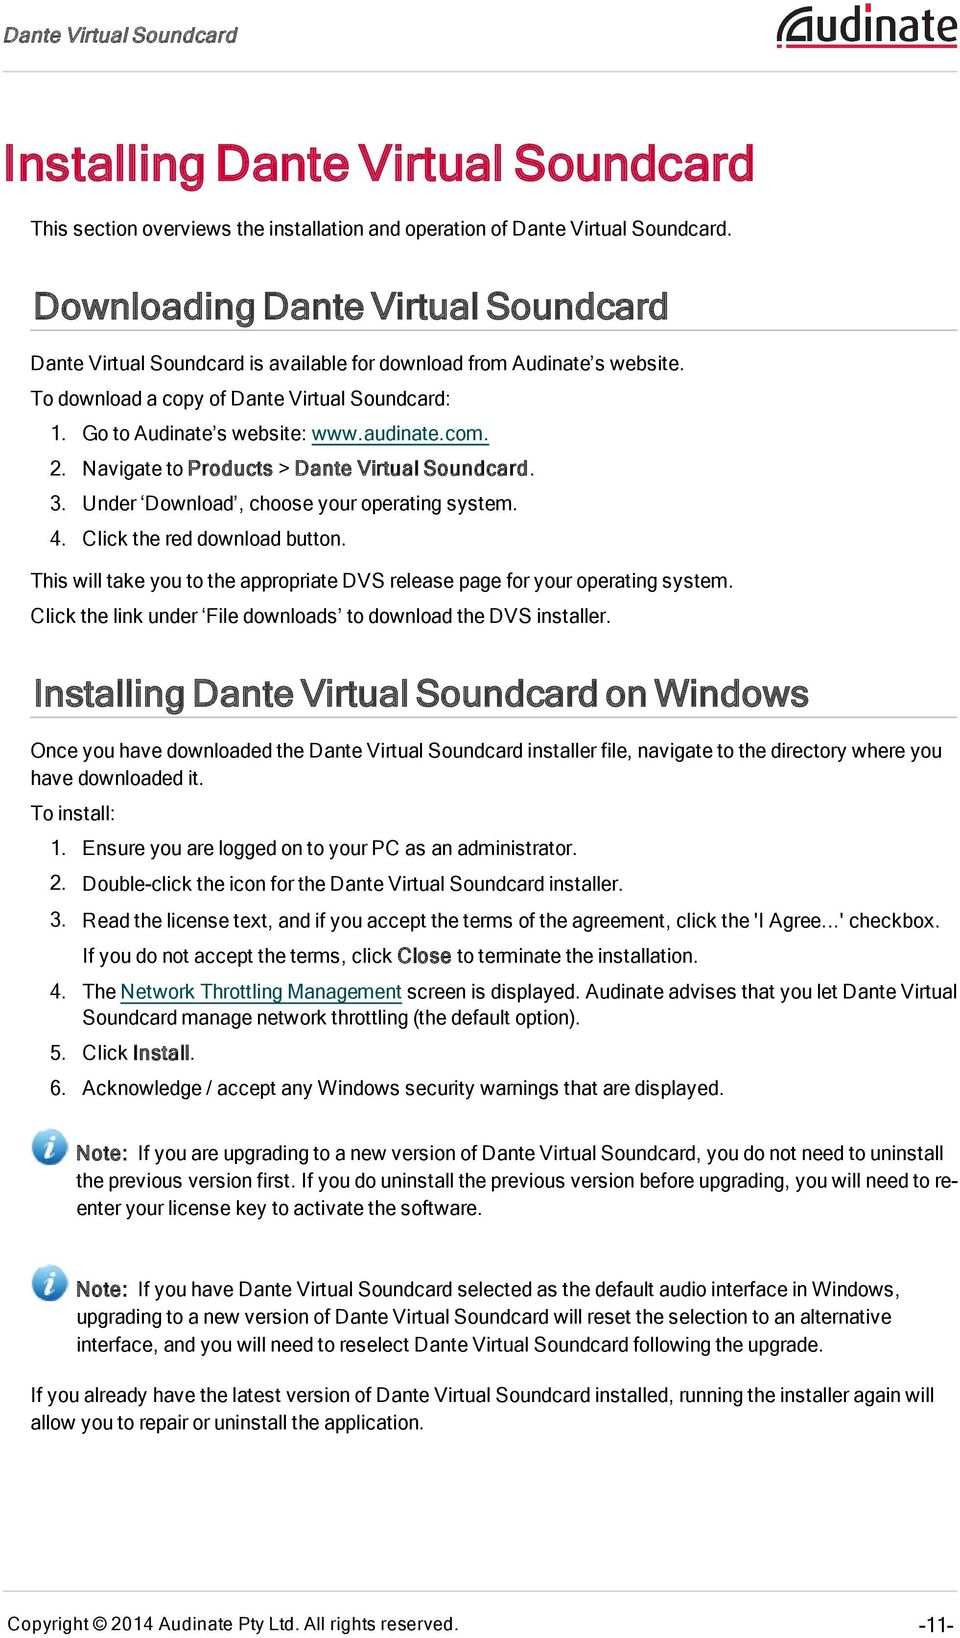 Dante Virtual Soundcard - PDF